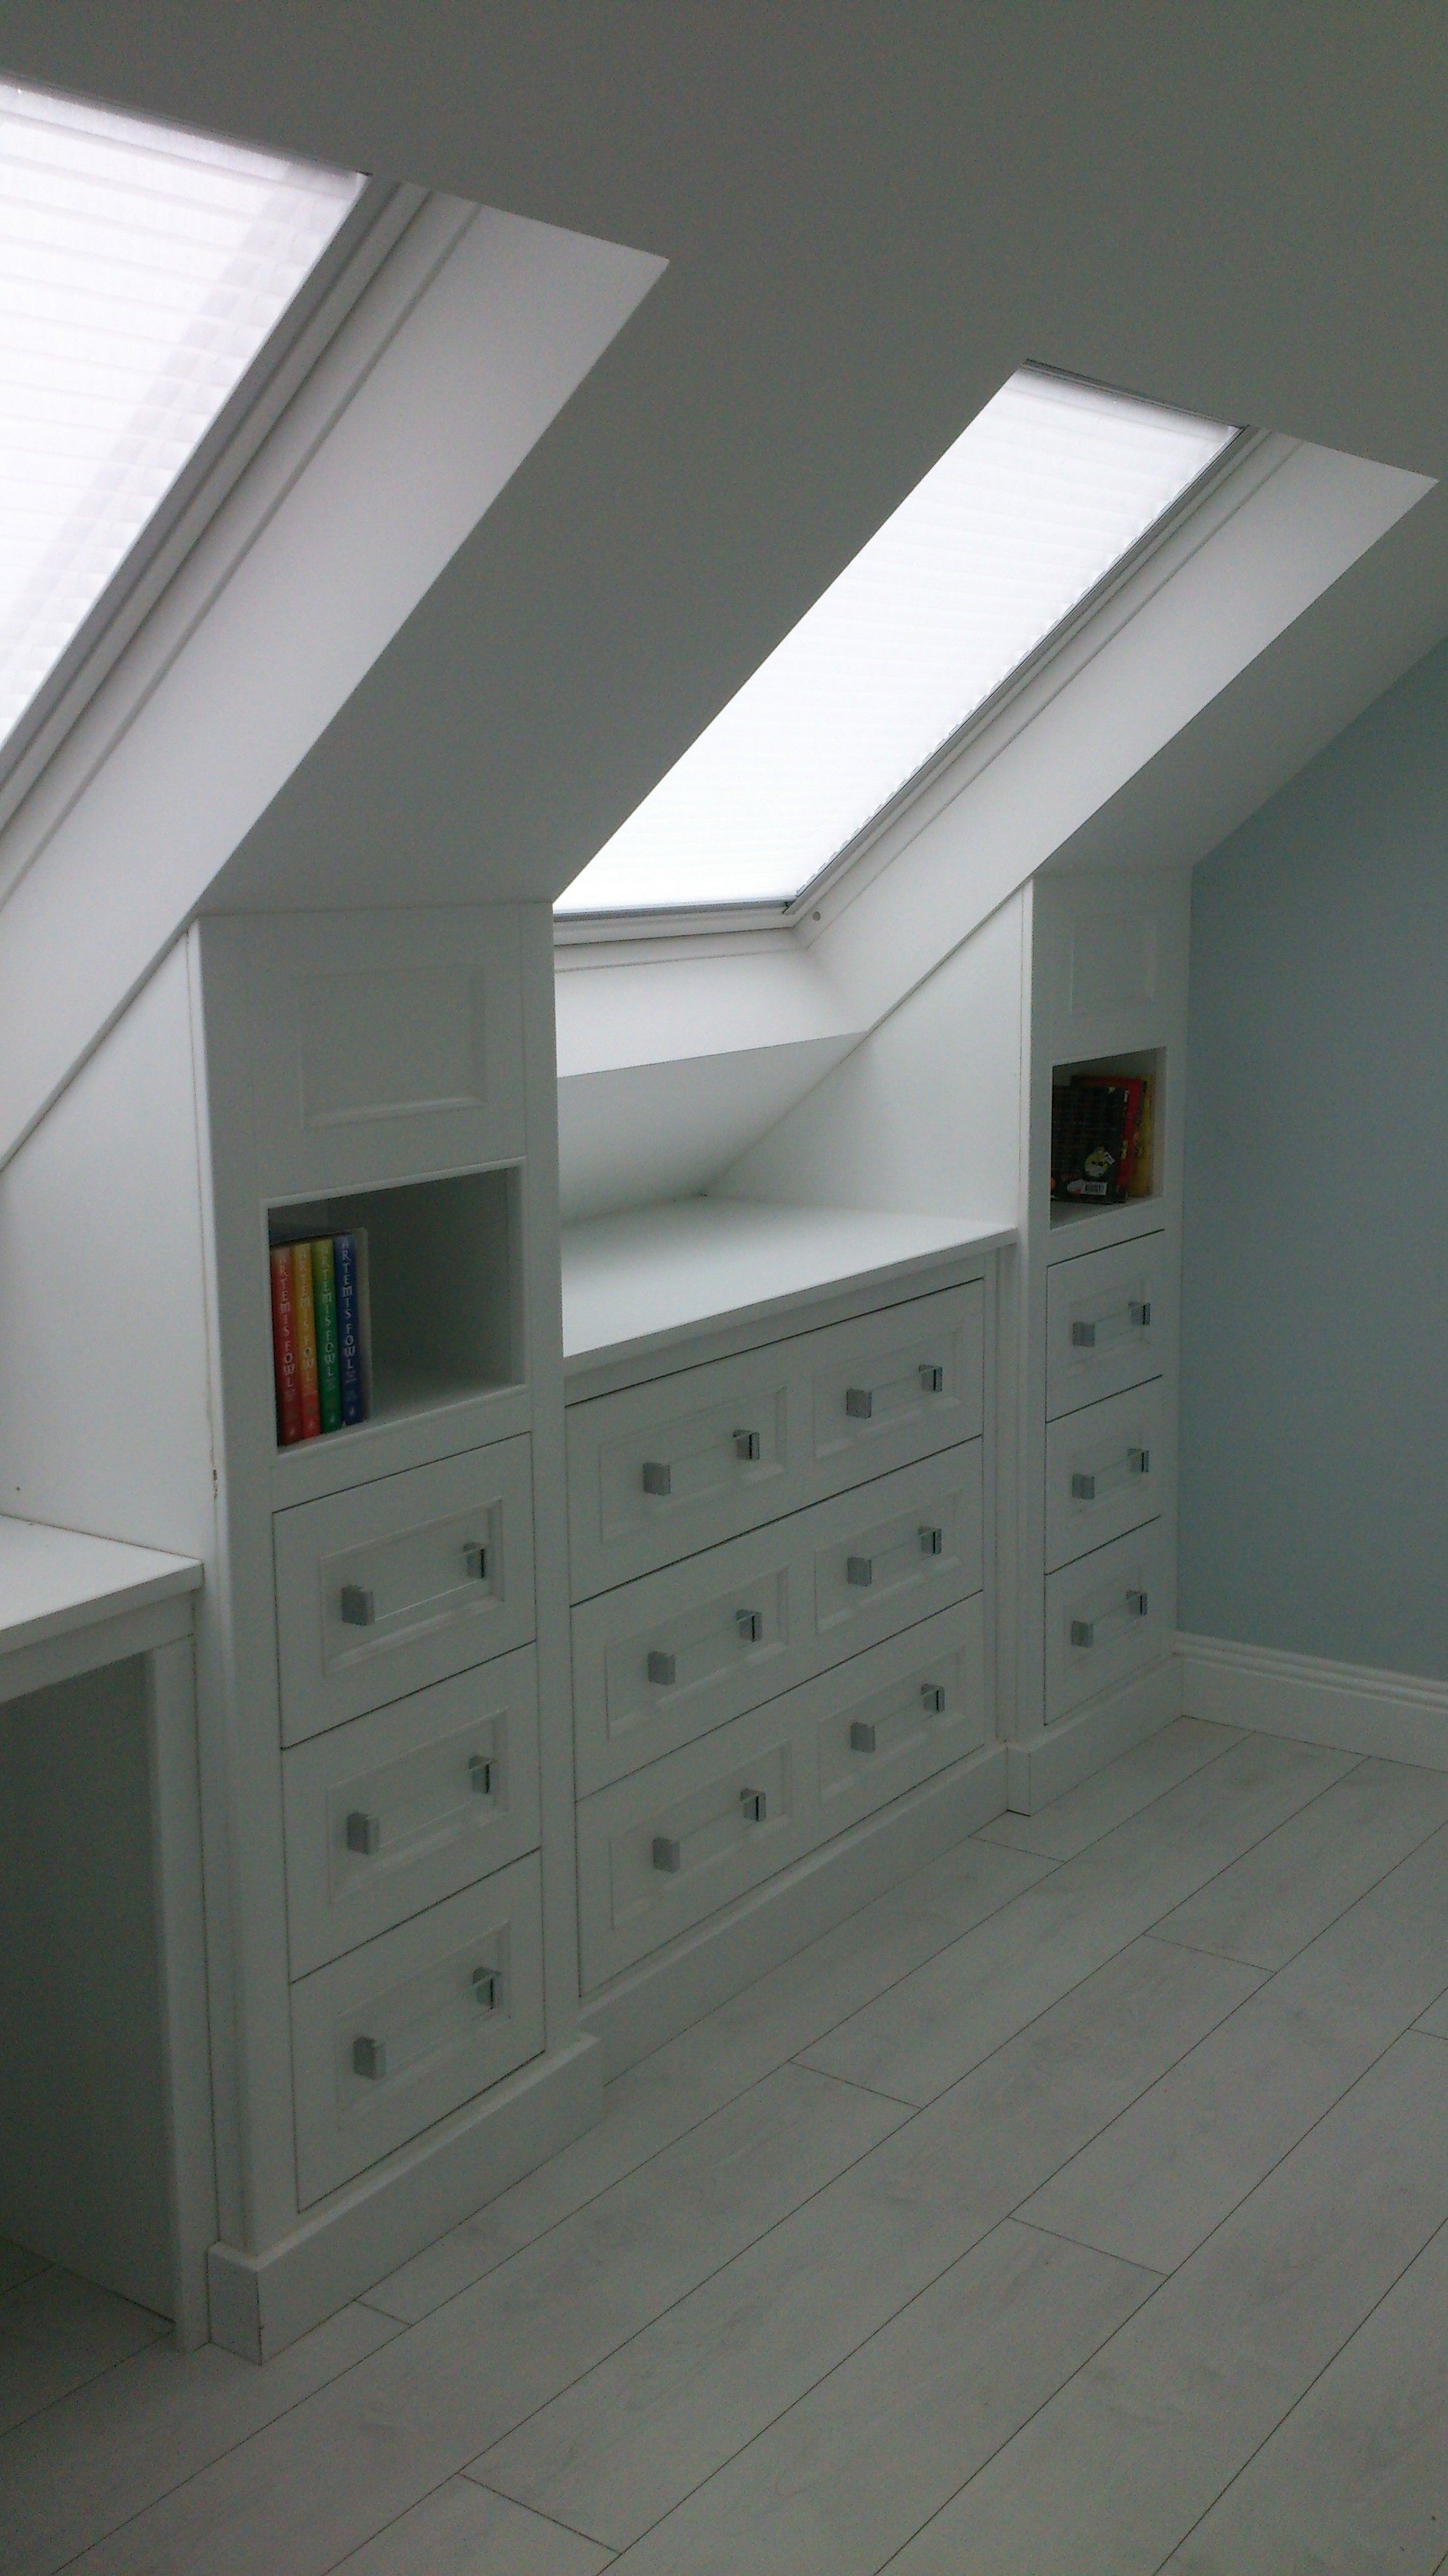 Attic Decoration | An Example of a Flat in London #atticapartment